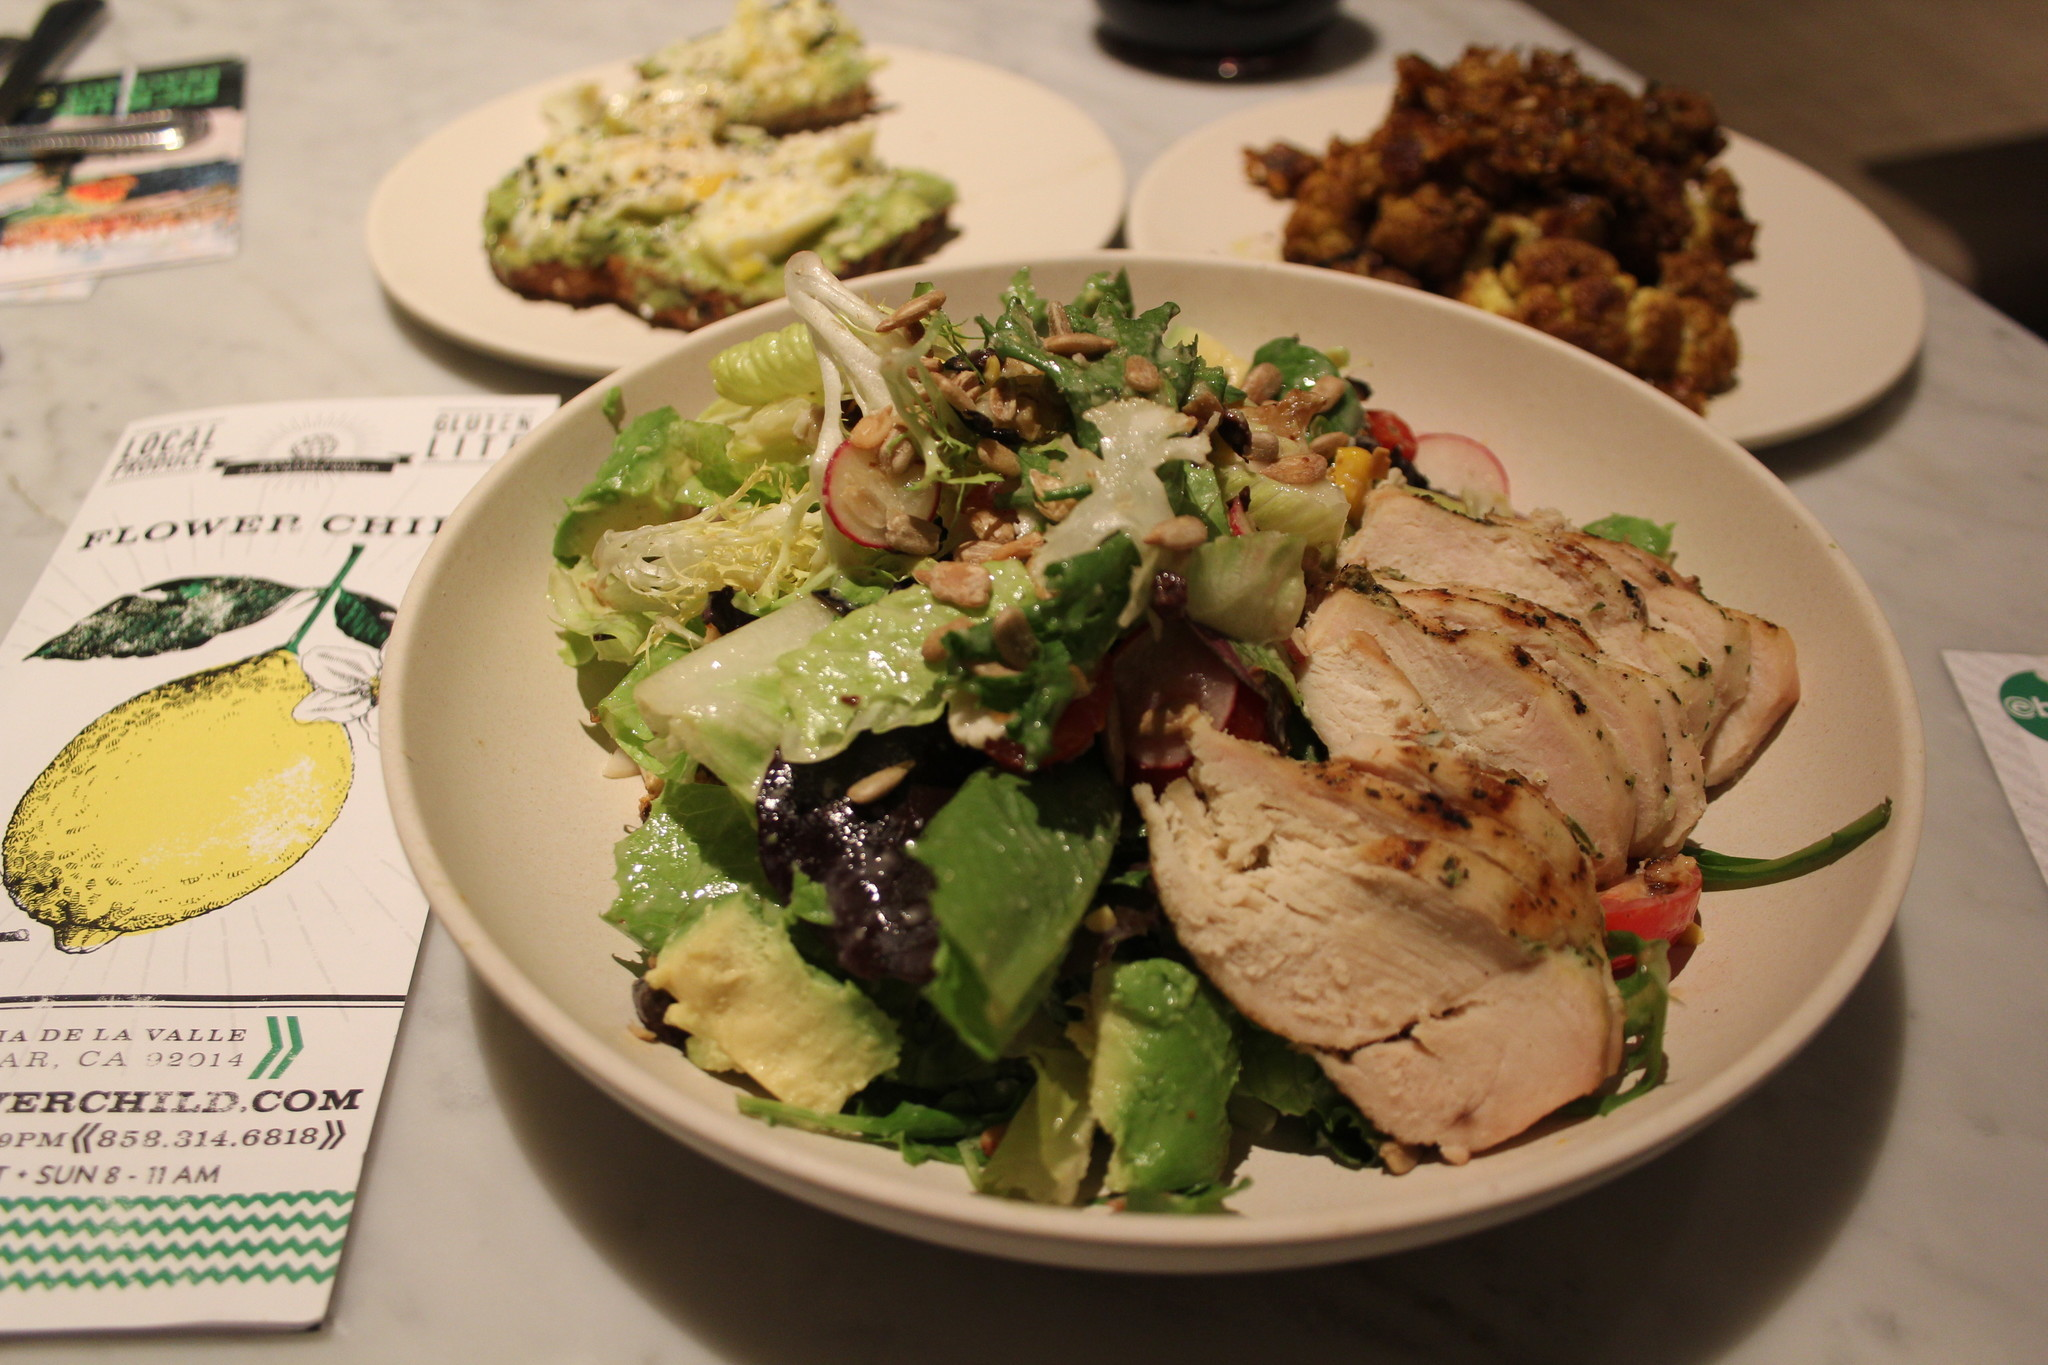 The menu includes mix-and-match veggie and grain dishes, salads, wraps and bowls. Many items are gluten-free or vegan.